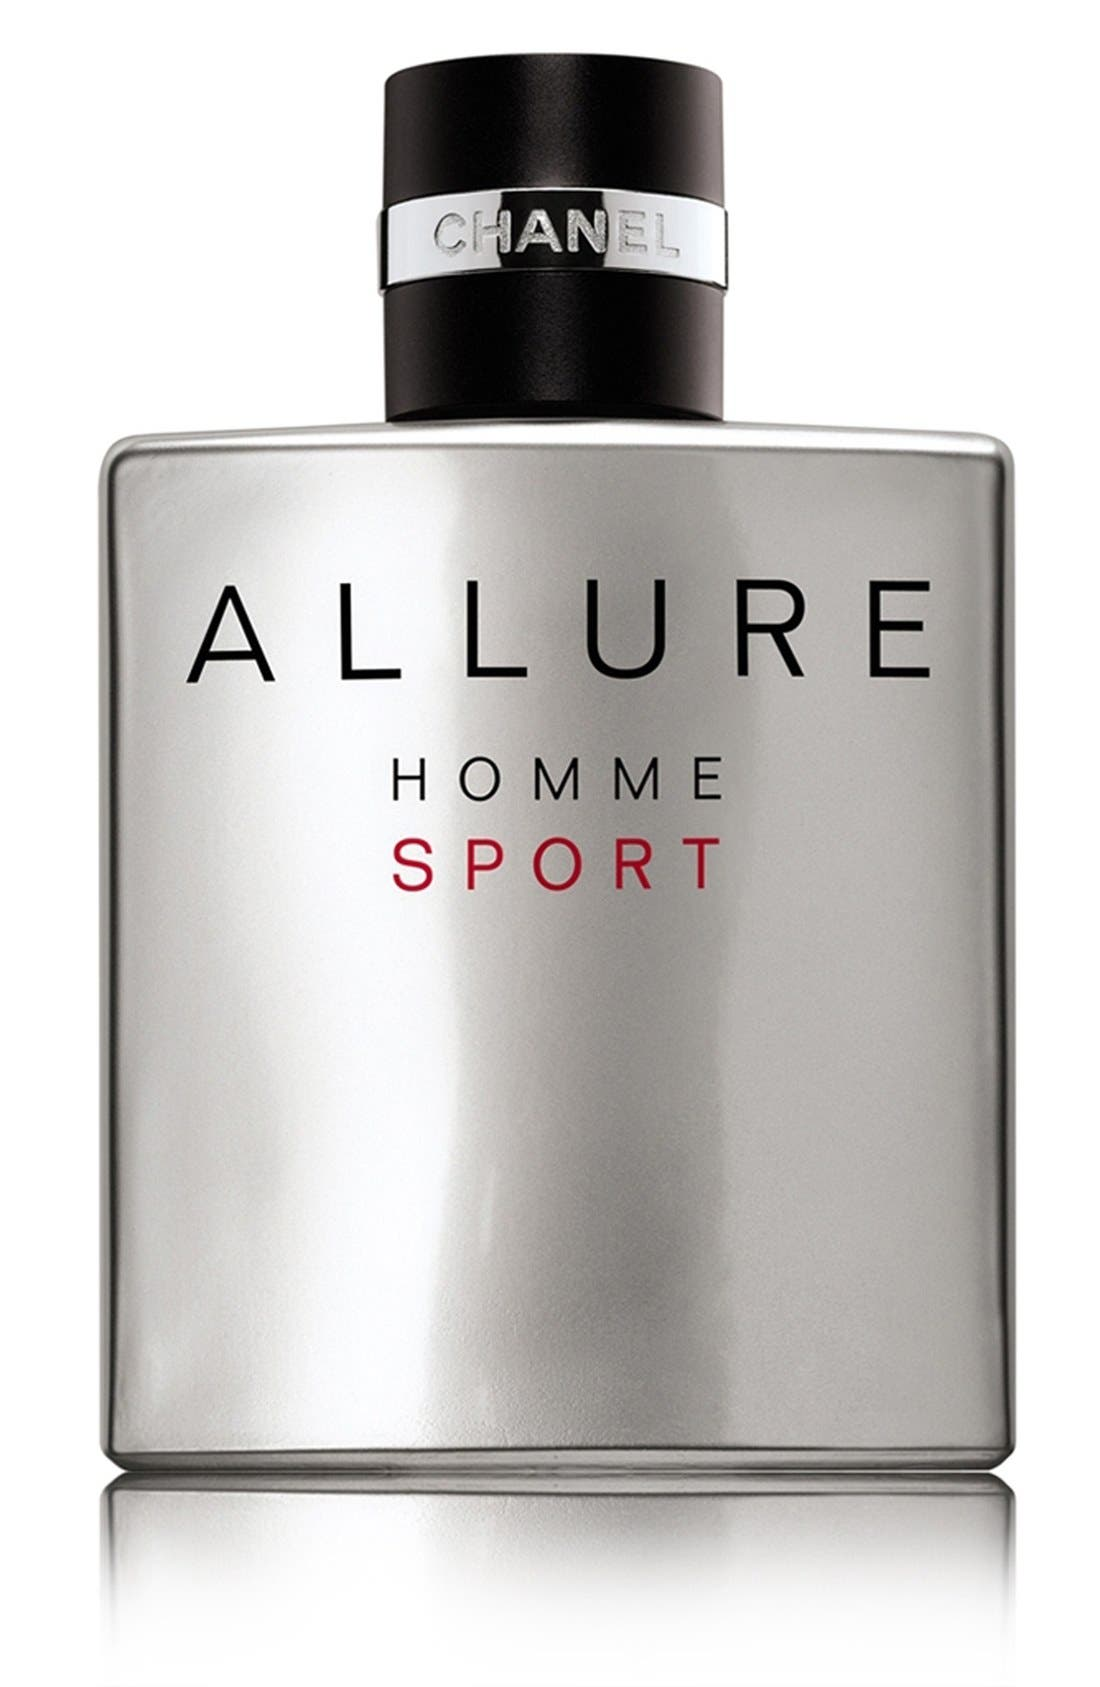 ALLURE HOMME SPORT Eau de Toilette Spray,                             Main thumbnail 1, color,                             NO COLOR